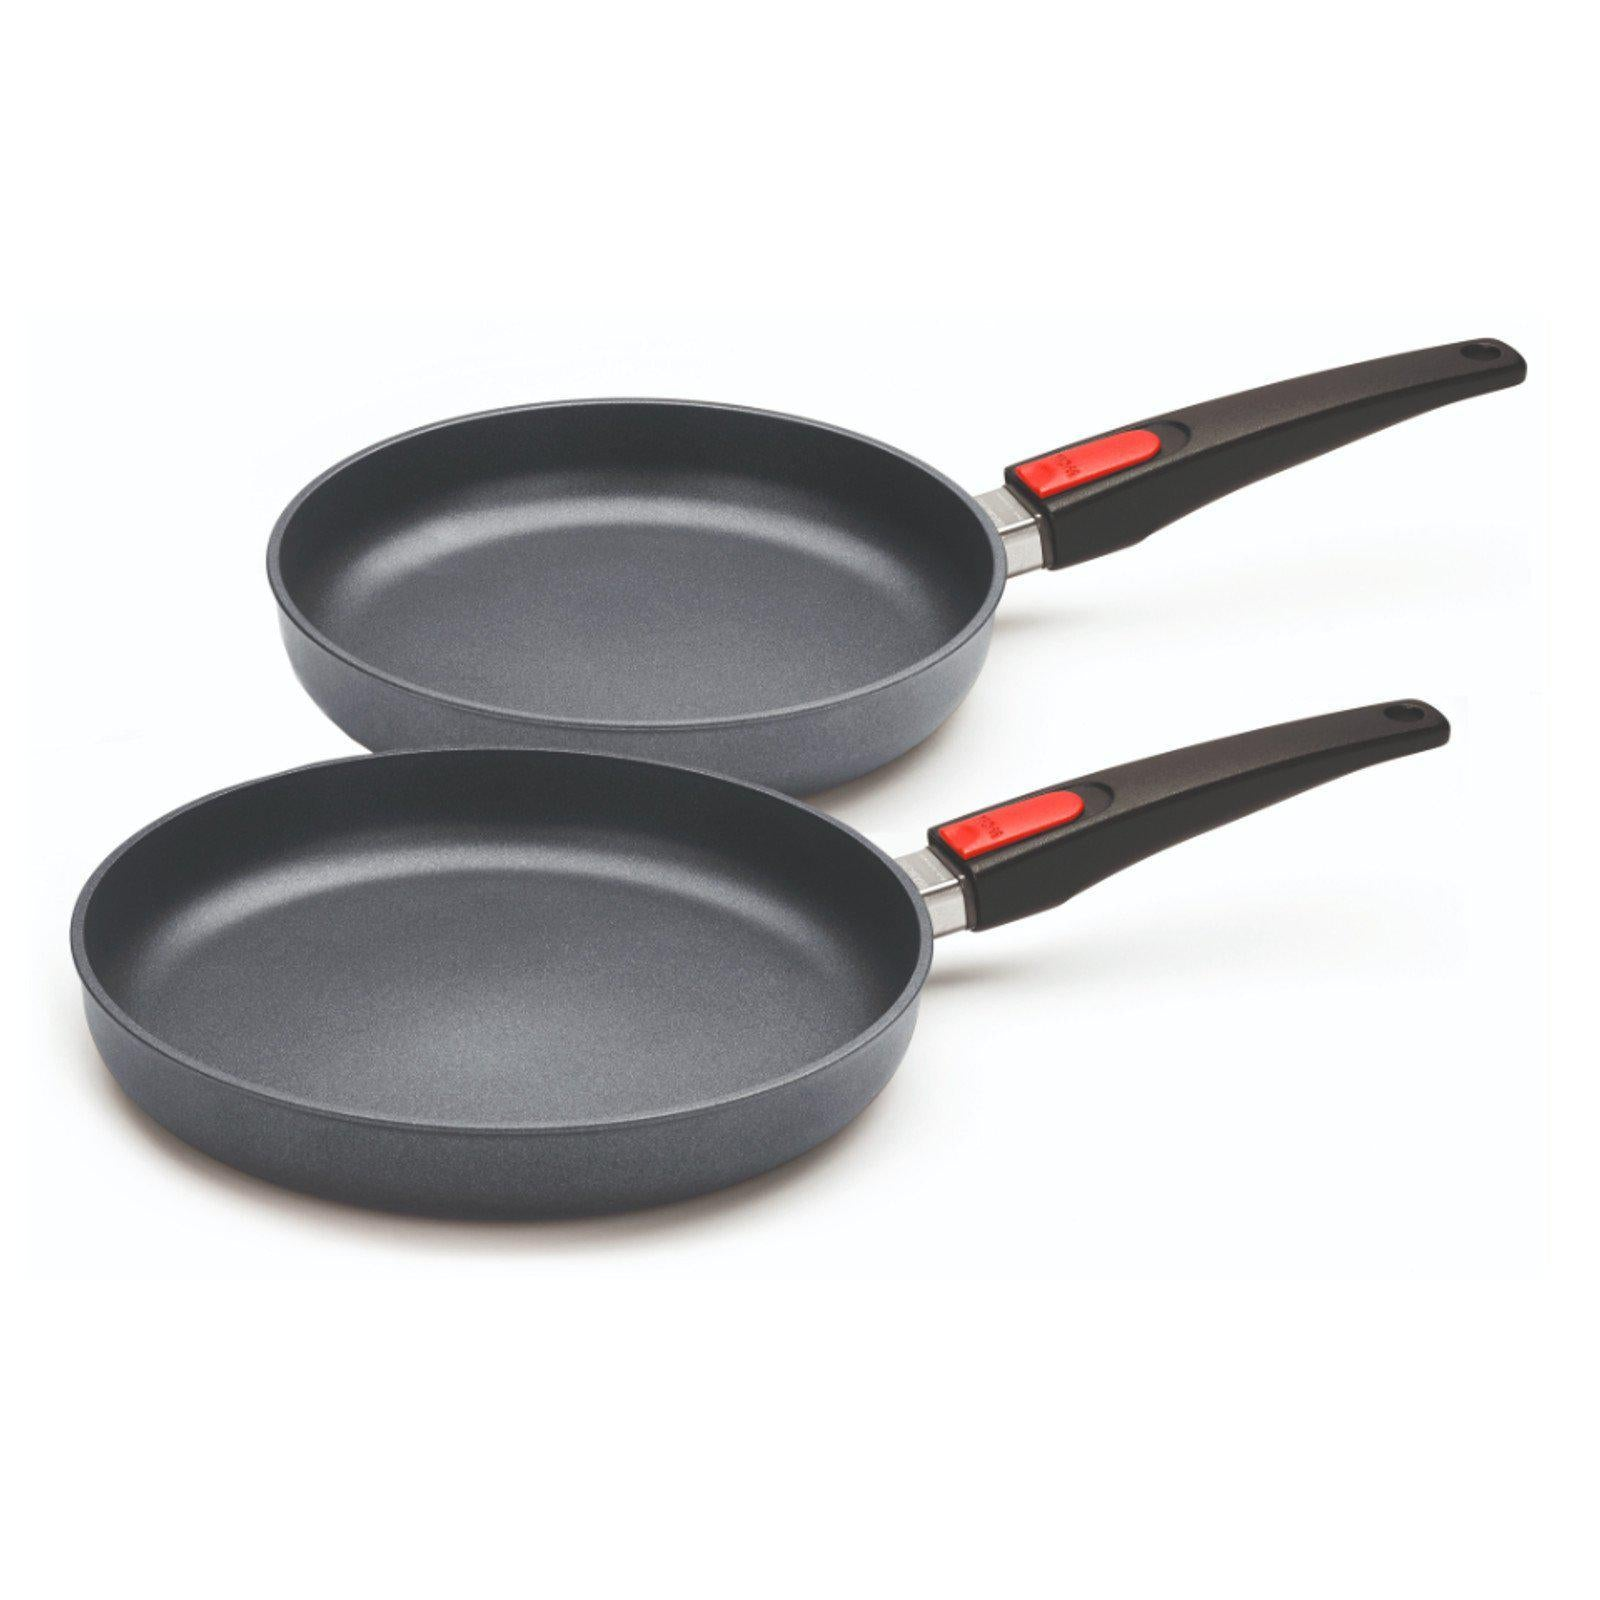 Woll Diamond Lite Induction Frying Pan Set-Frying Pan-Chef's Quality Cookware